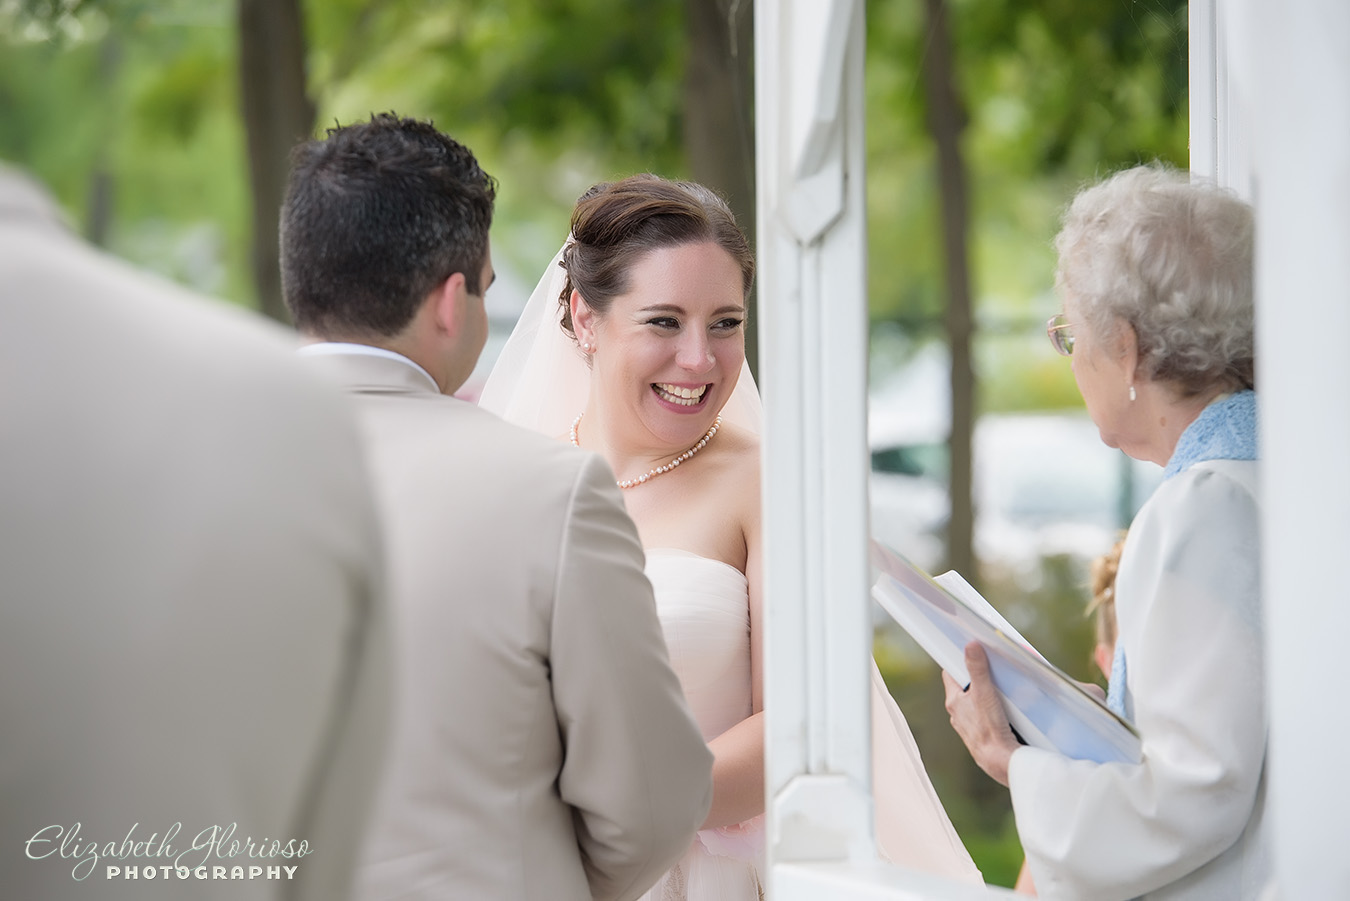 Vermilion_wedding_Glorioso Photography_1028